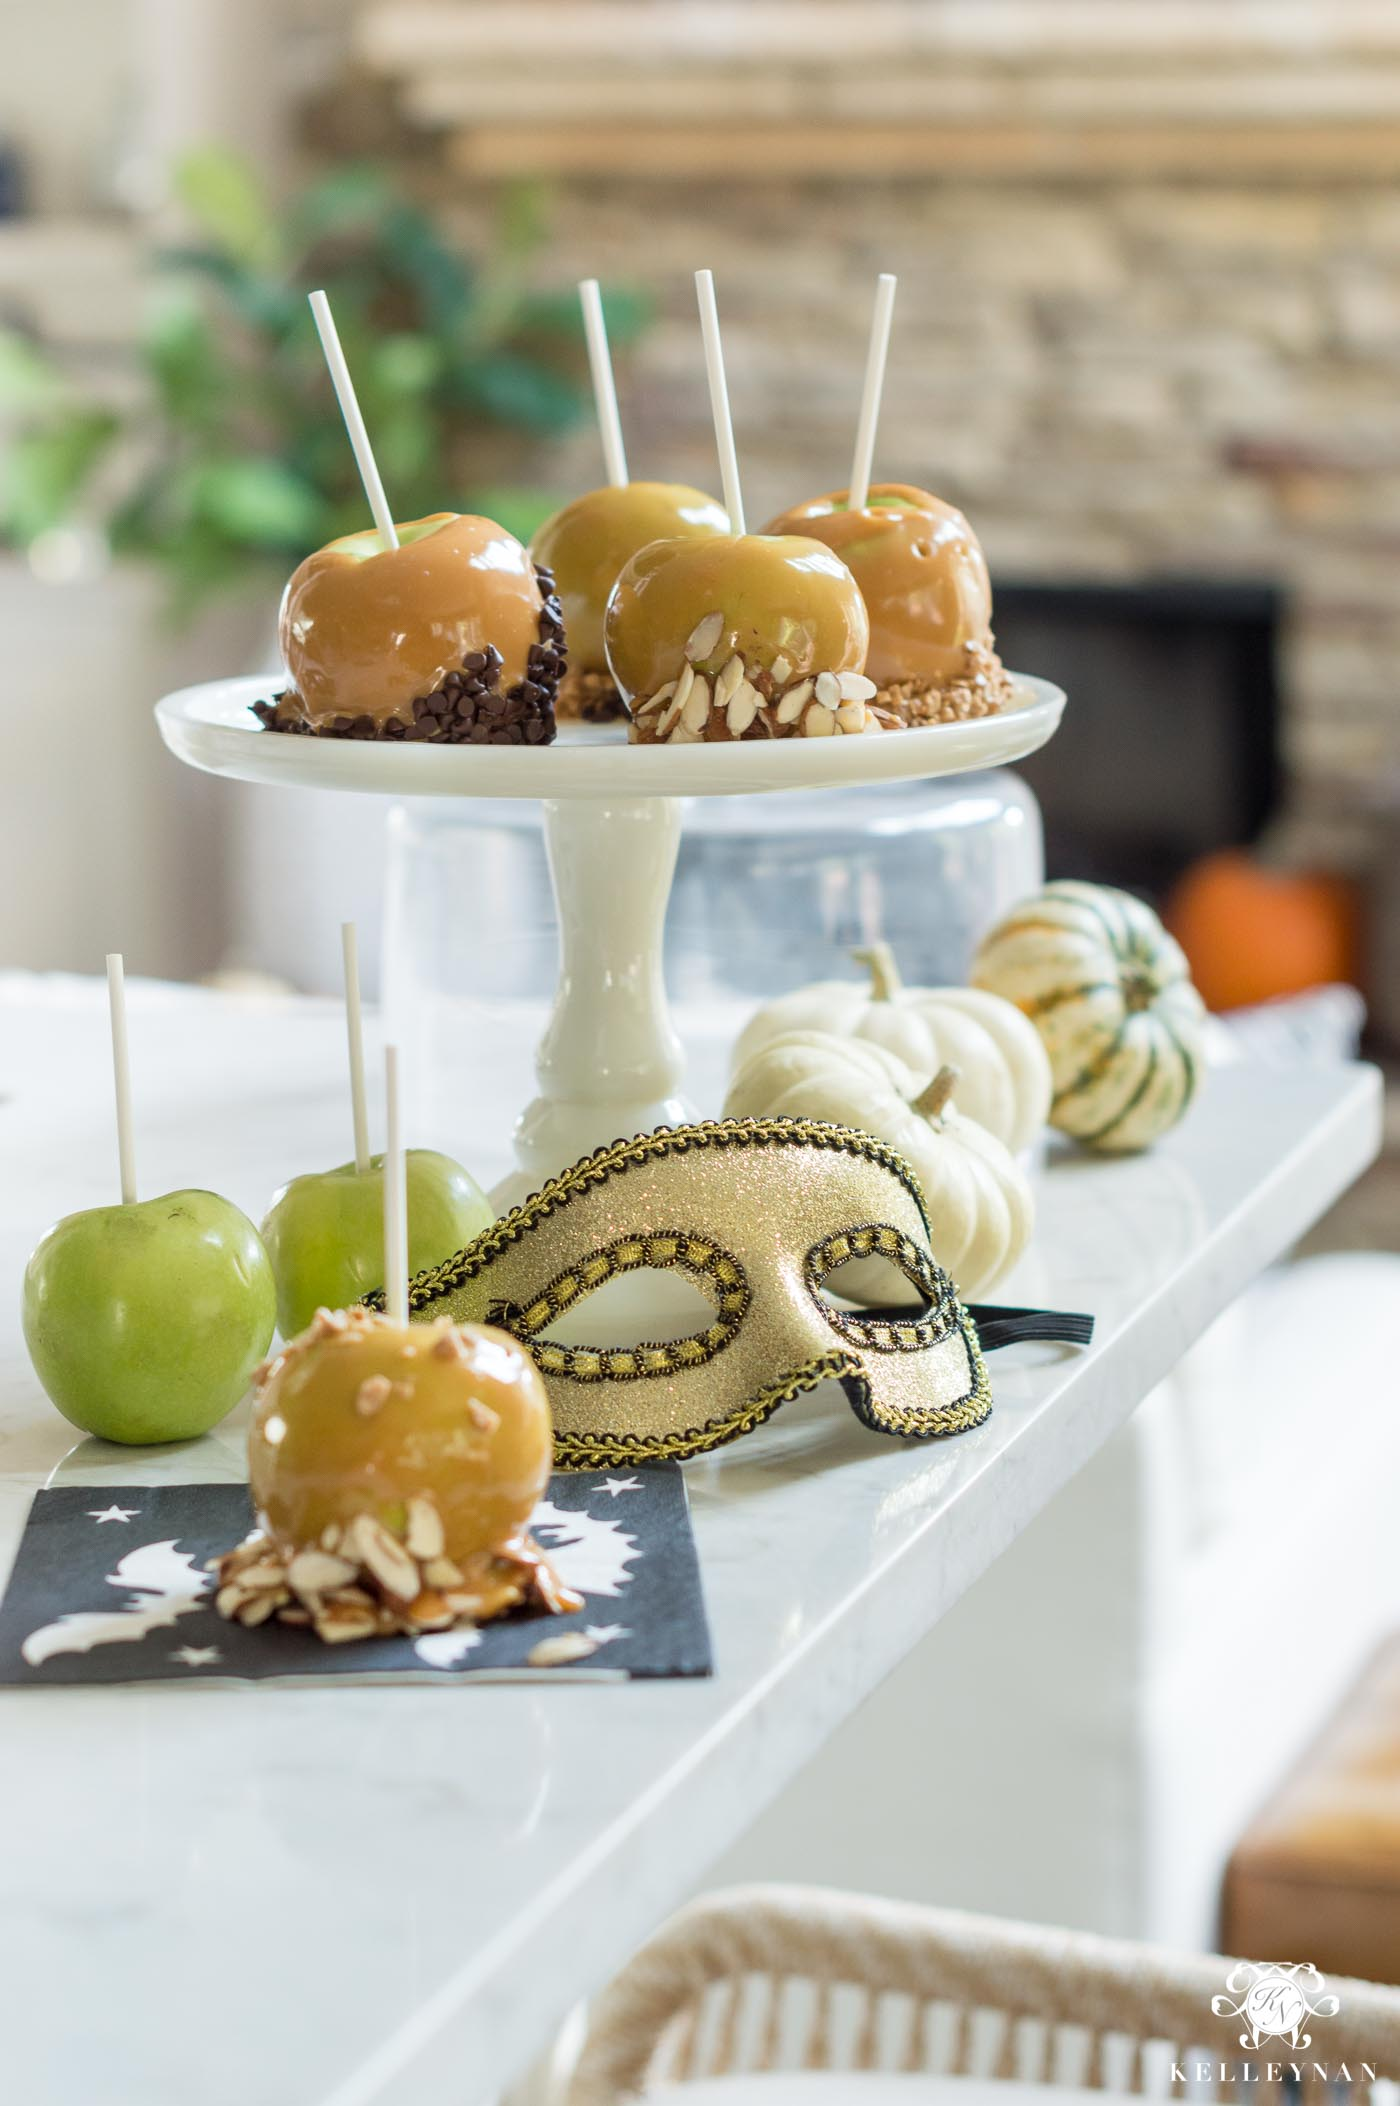 Caramel Apples with various topping ideas